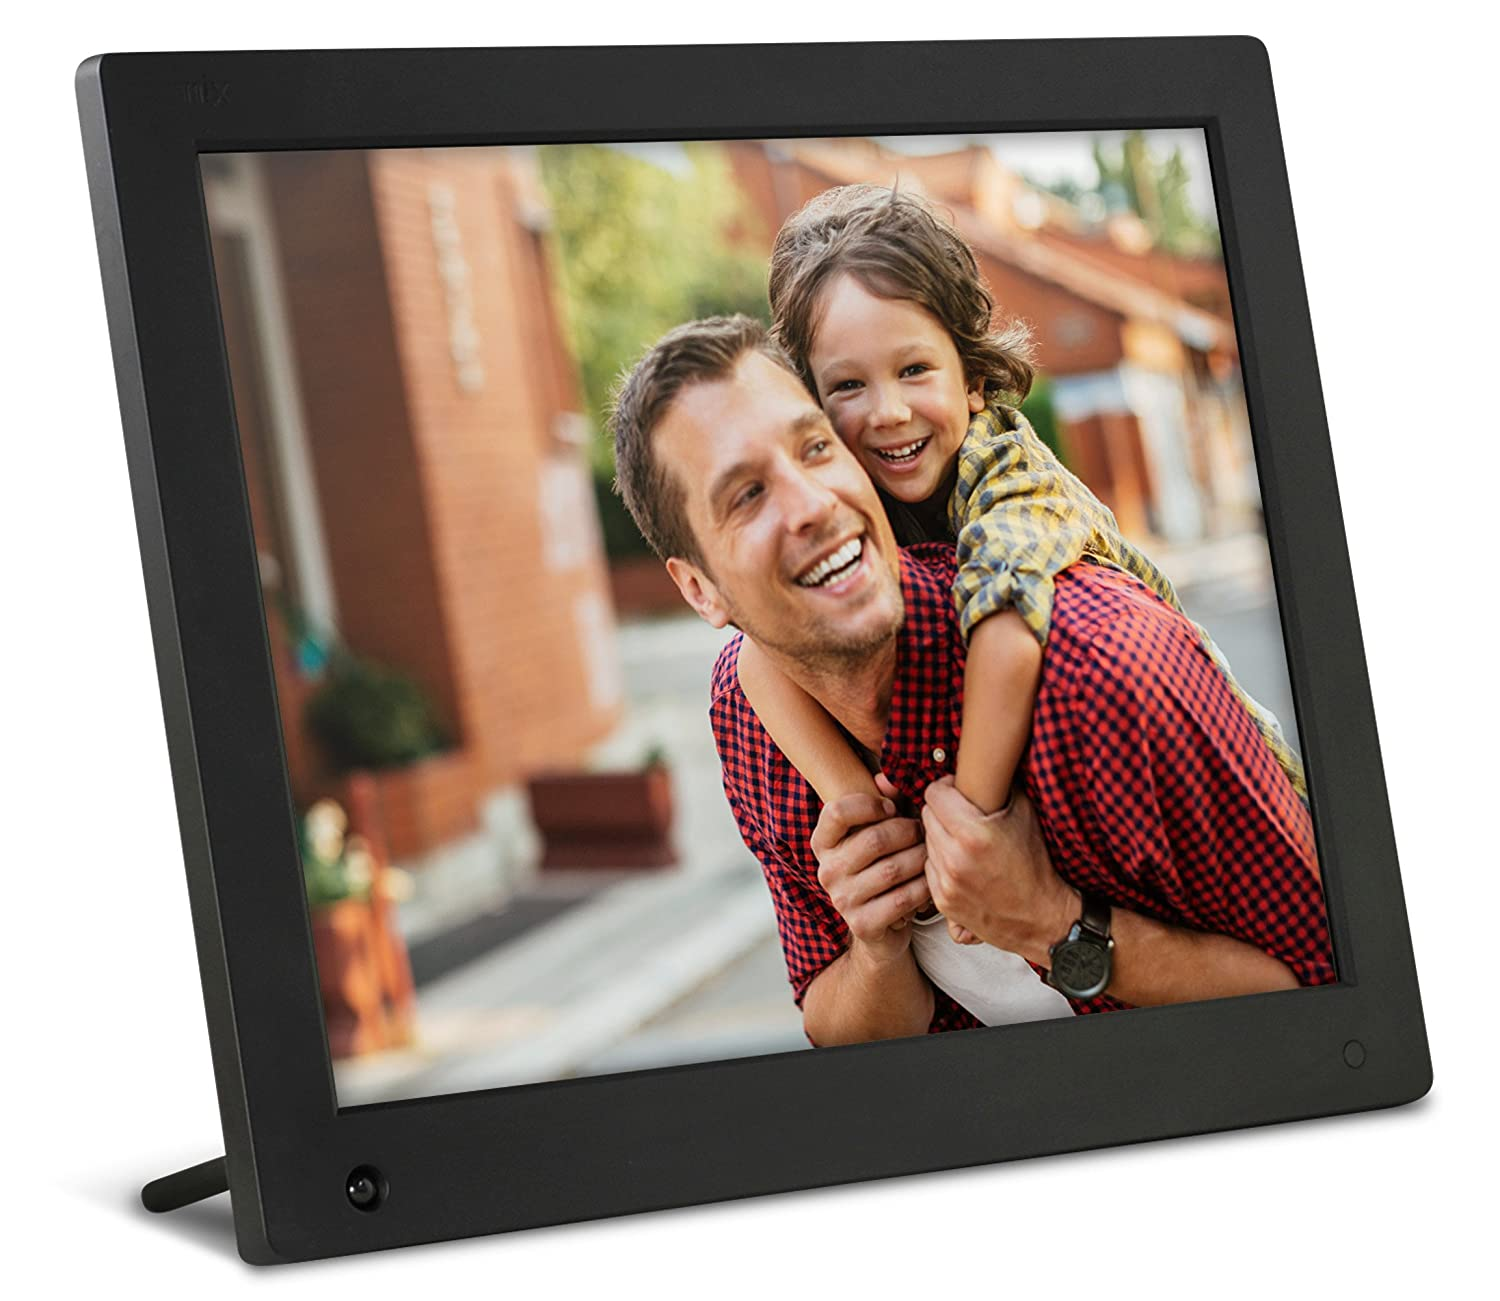 NIX Advance 15 Inch Hi-Res Digital Photo & HD Video (720p) Frame ...